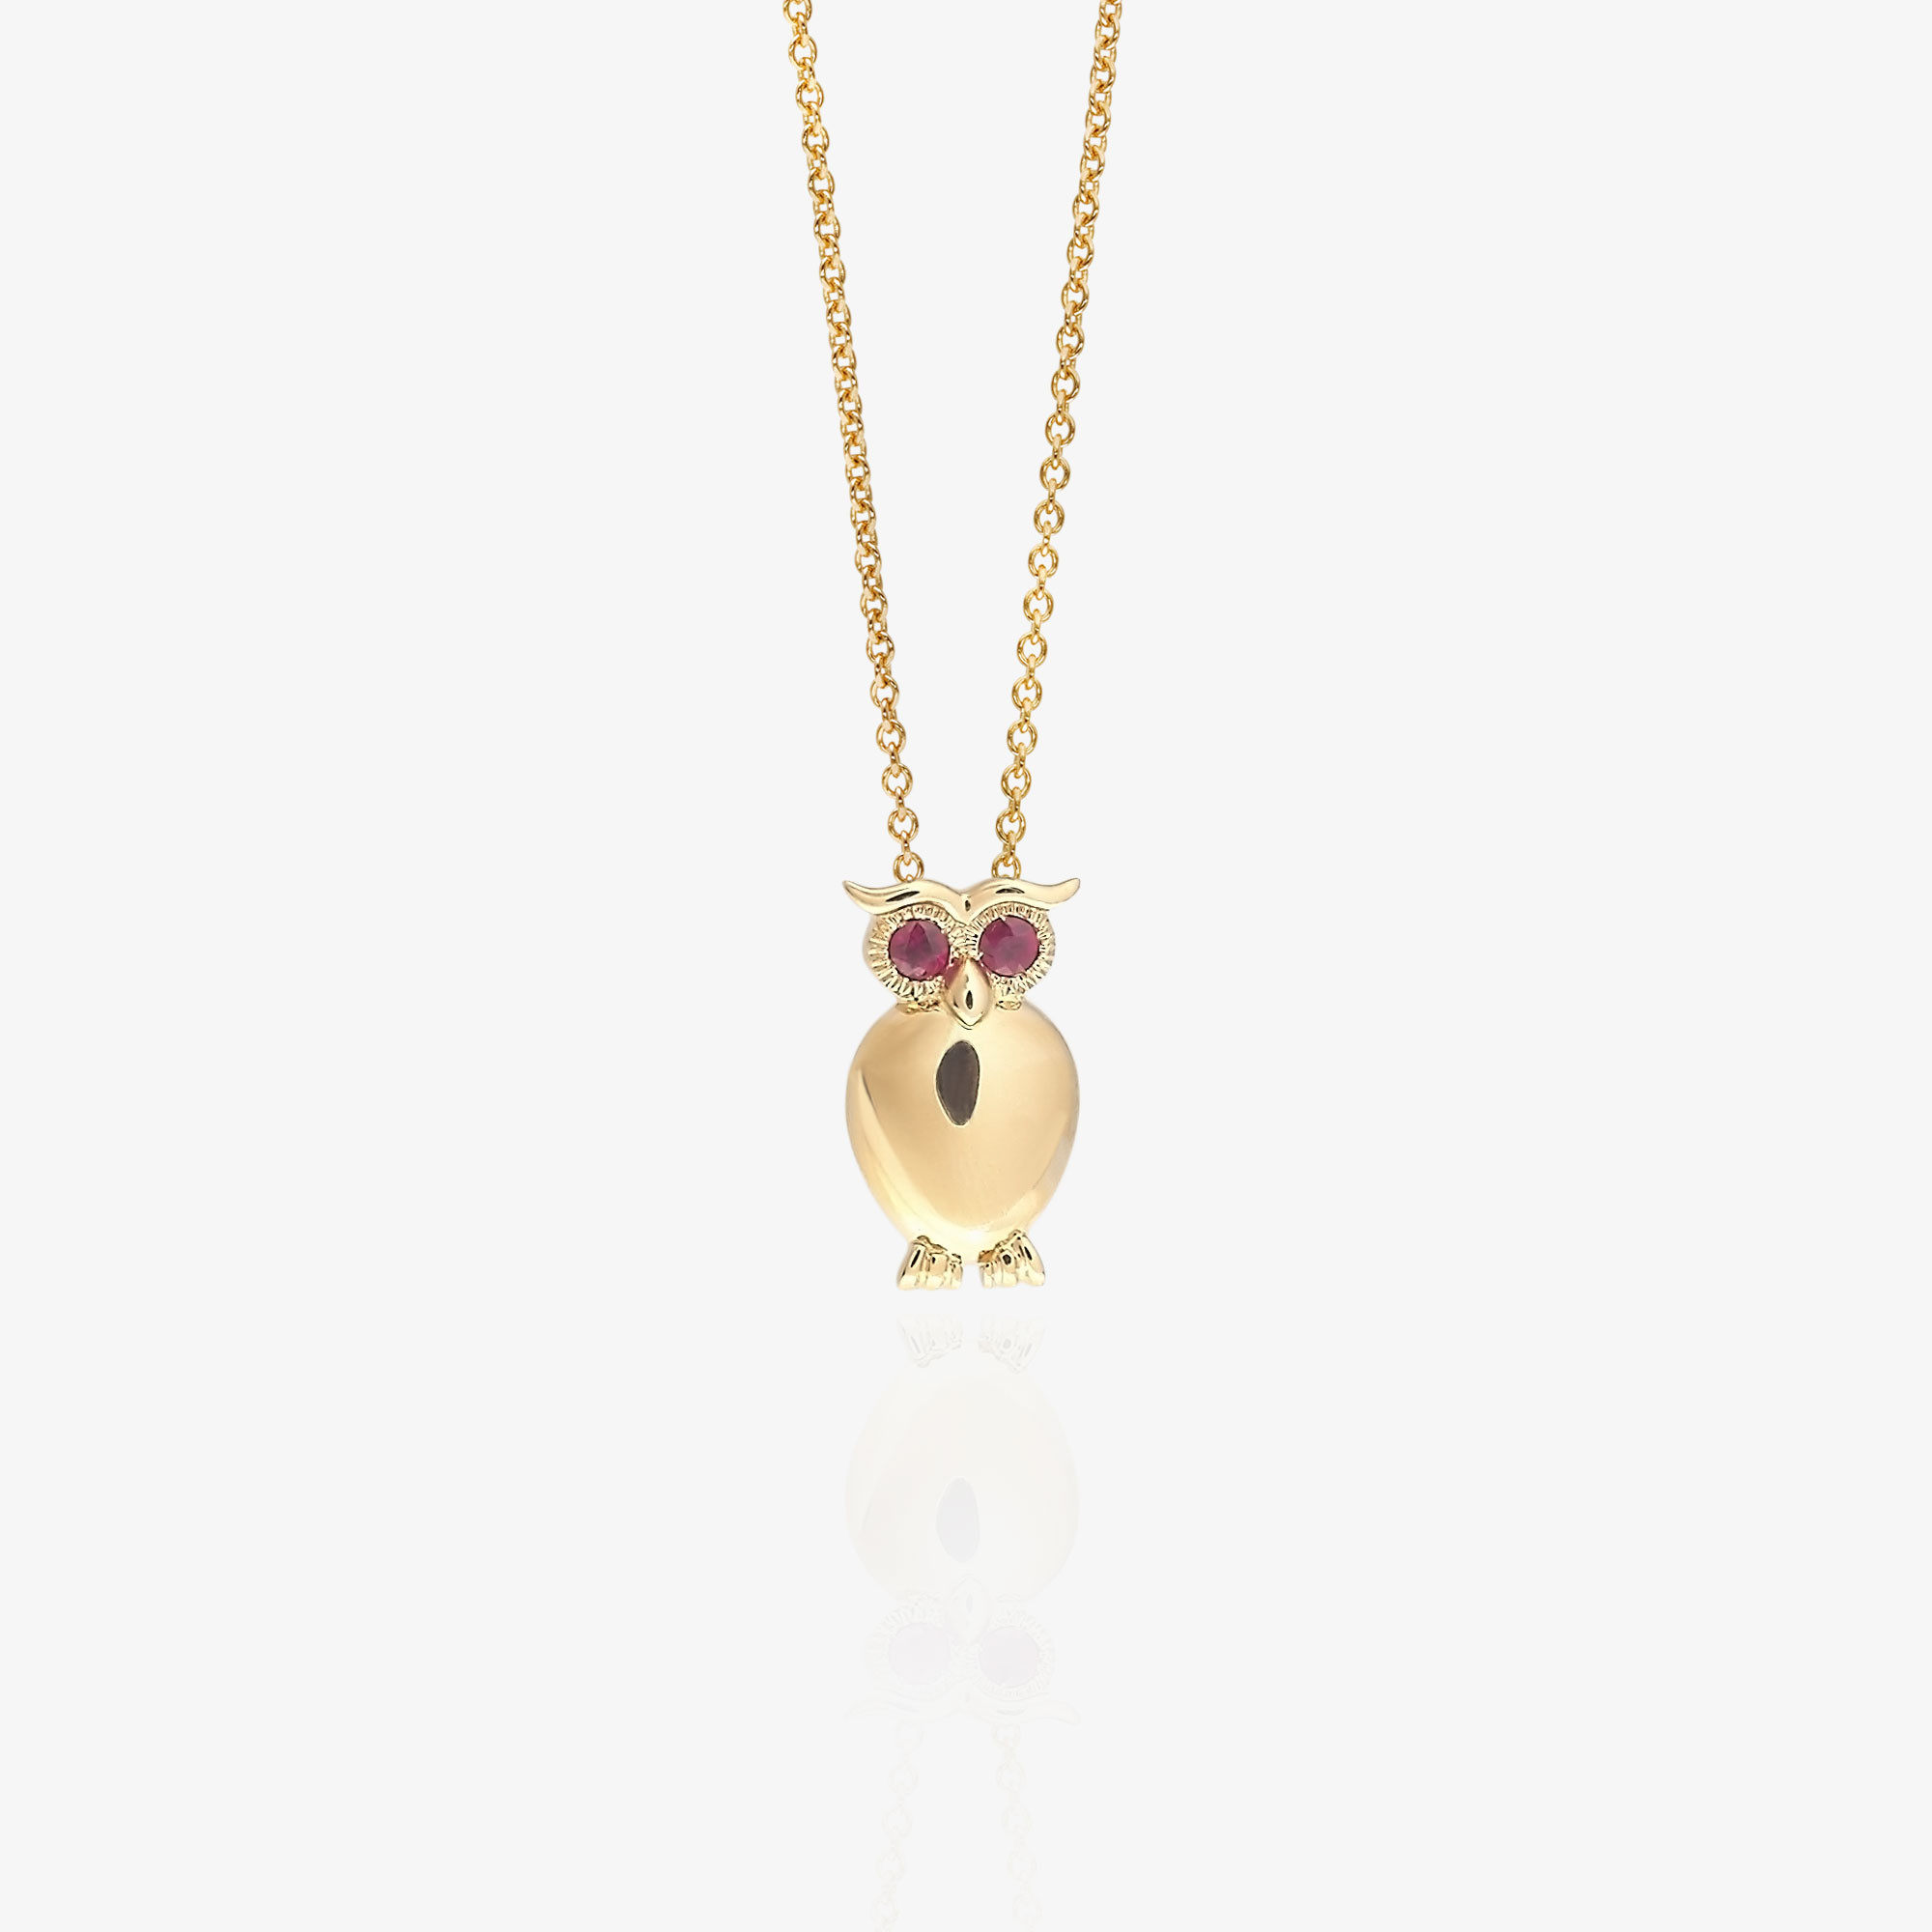 Owl necklace